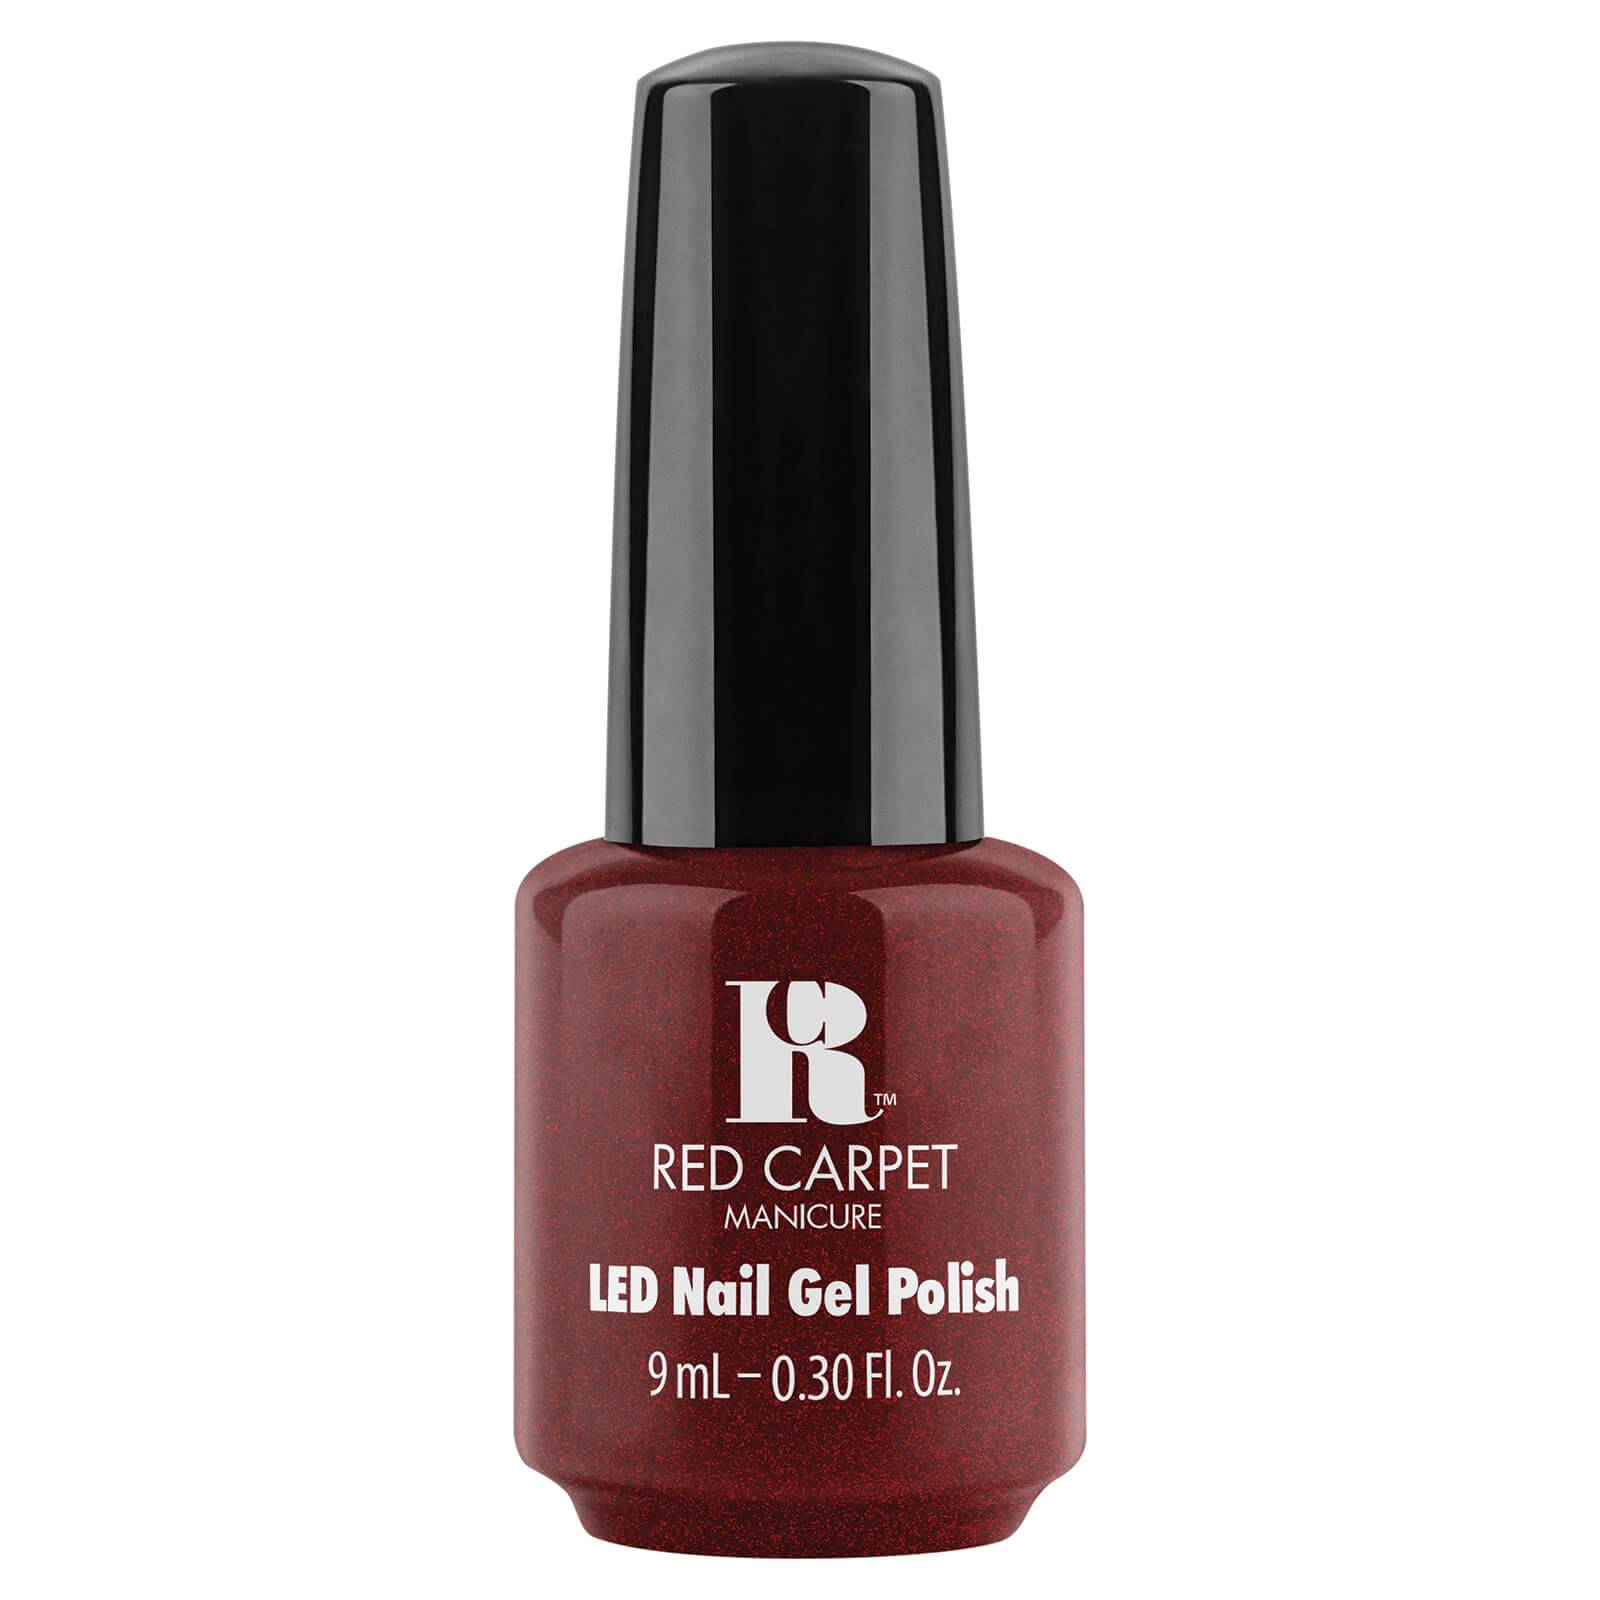 Red Carpet Manicure Vernis à Ongles Gel Red Carpet Manicure 9 ml – Haute Couture